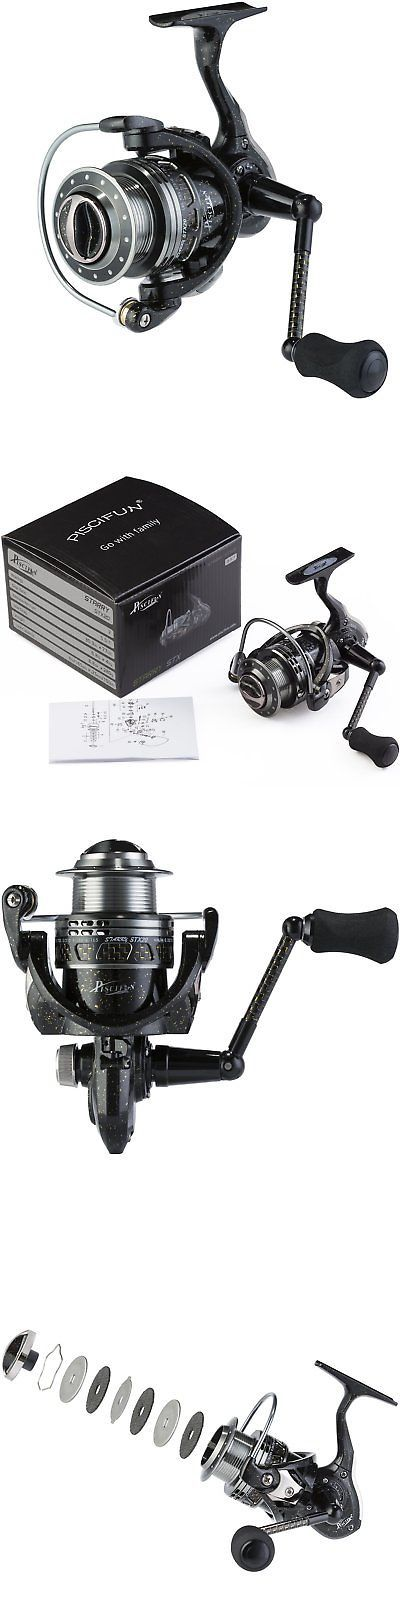 Books and Video 62155: Piscifun Starry Spinning Reel Light Smooth Powerful Carbon Fiber Drag System -> BUY IT NOW ONLY: $38.86 on eBay!